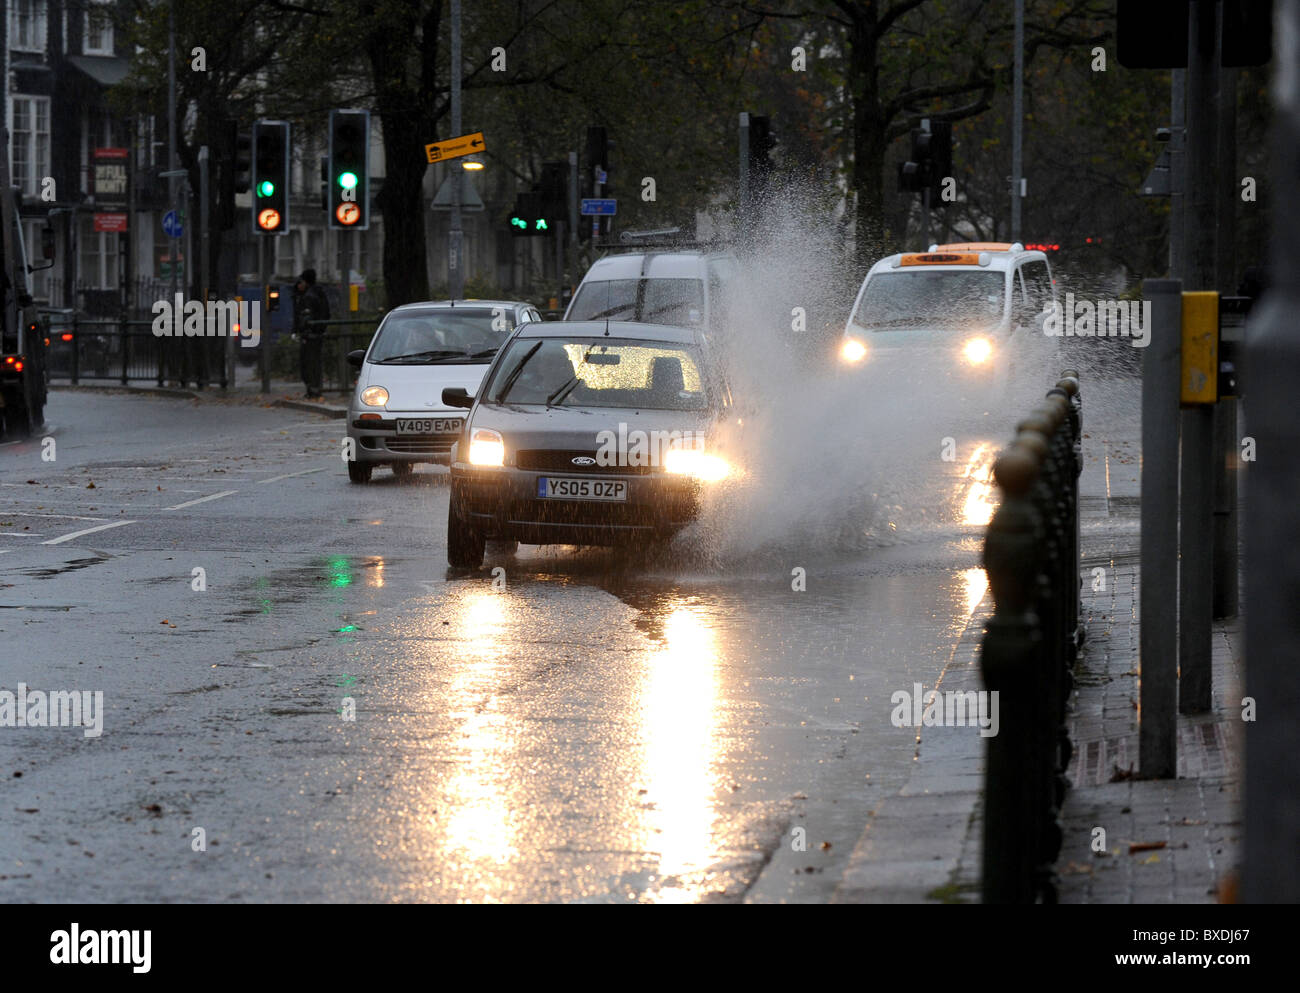 Cars drive through deep puddles on Brighton's Lewes road after deluge of heavy rain - Stock Image